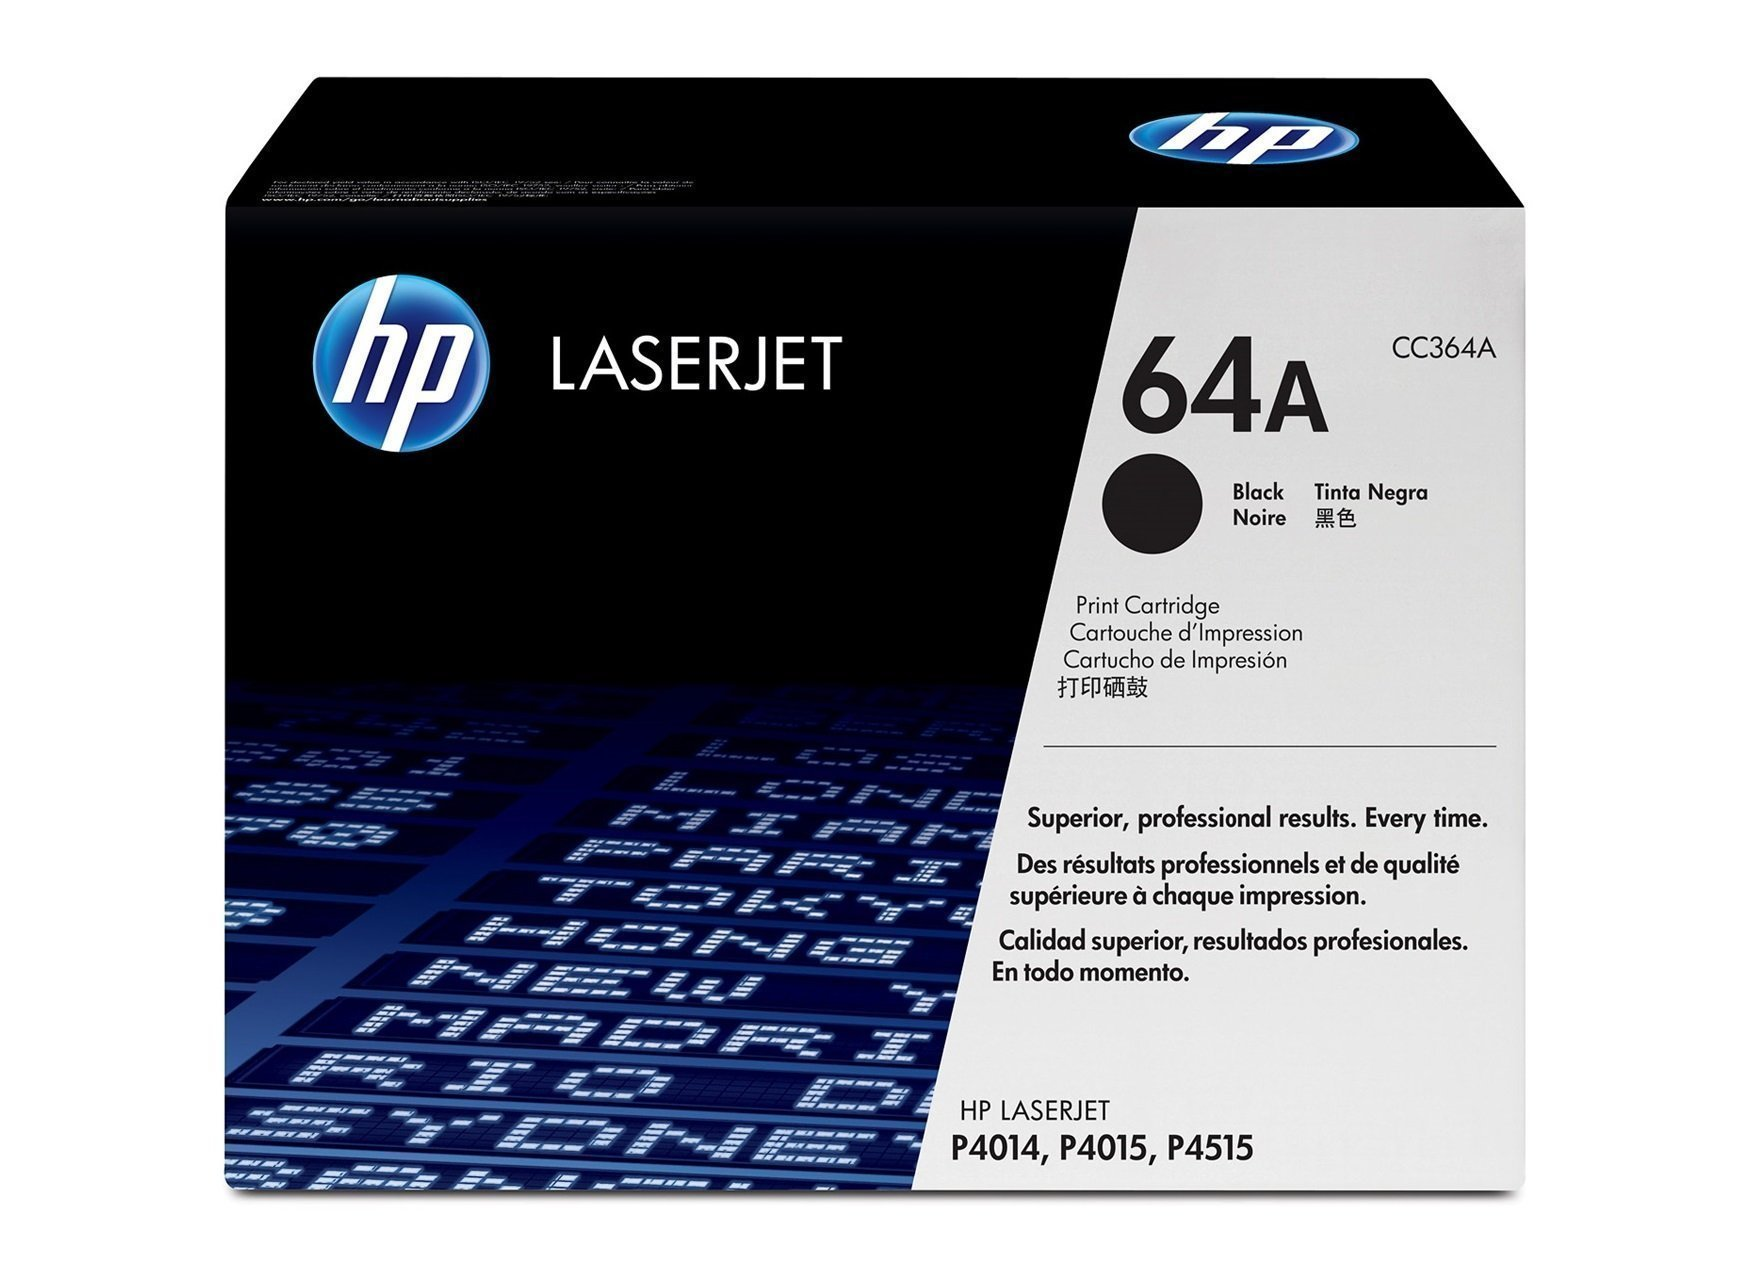 HP INK LASER JET  BLACK CC364A